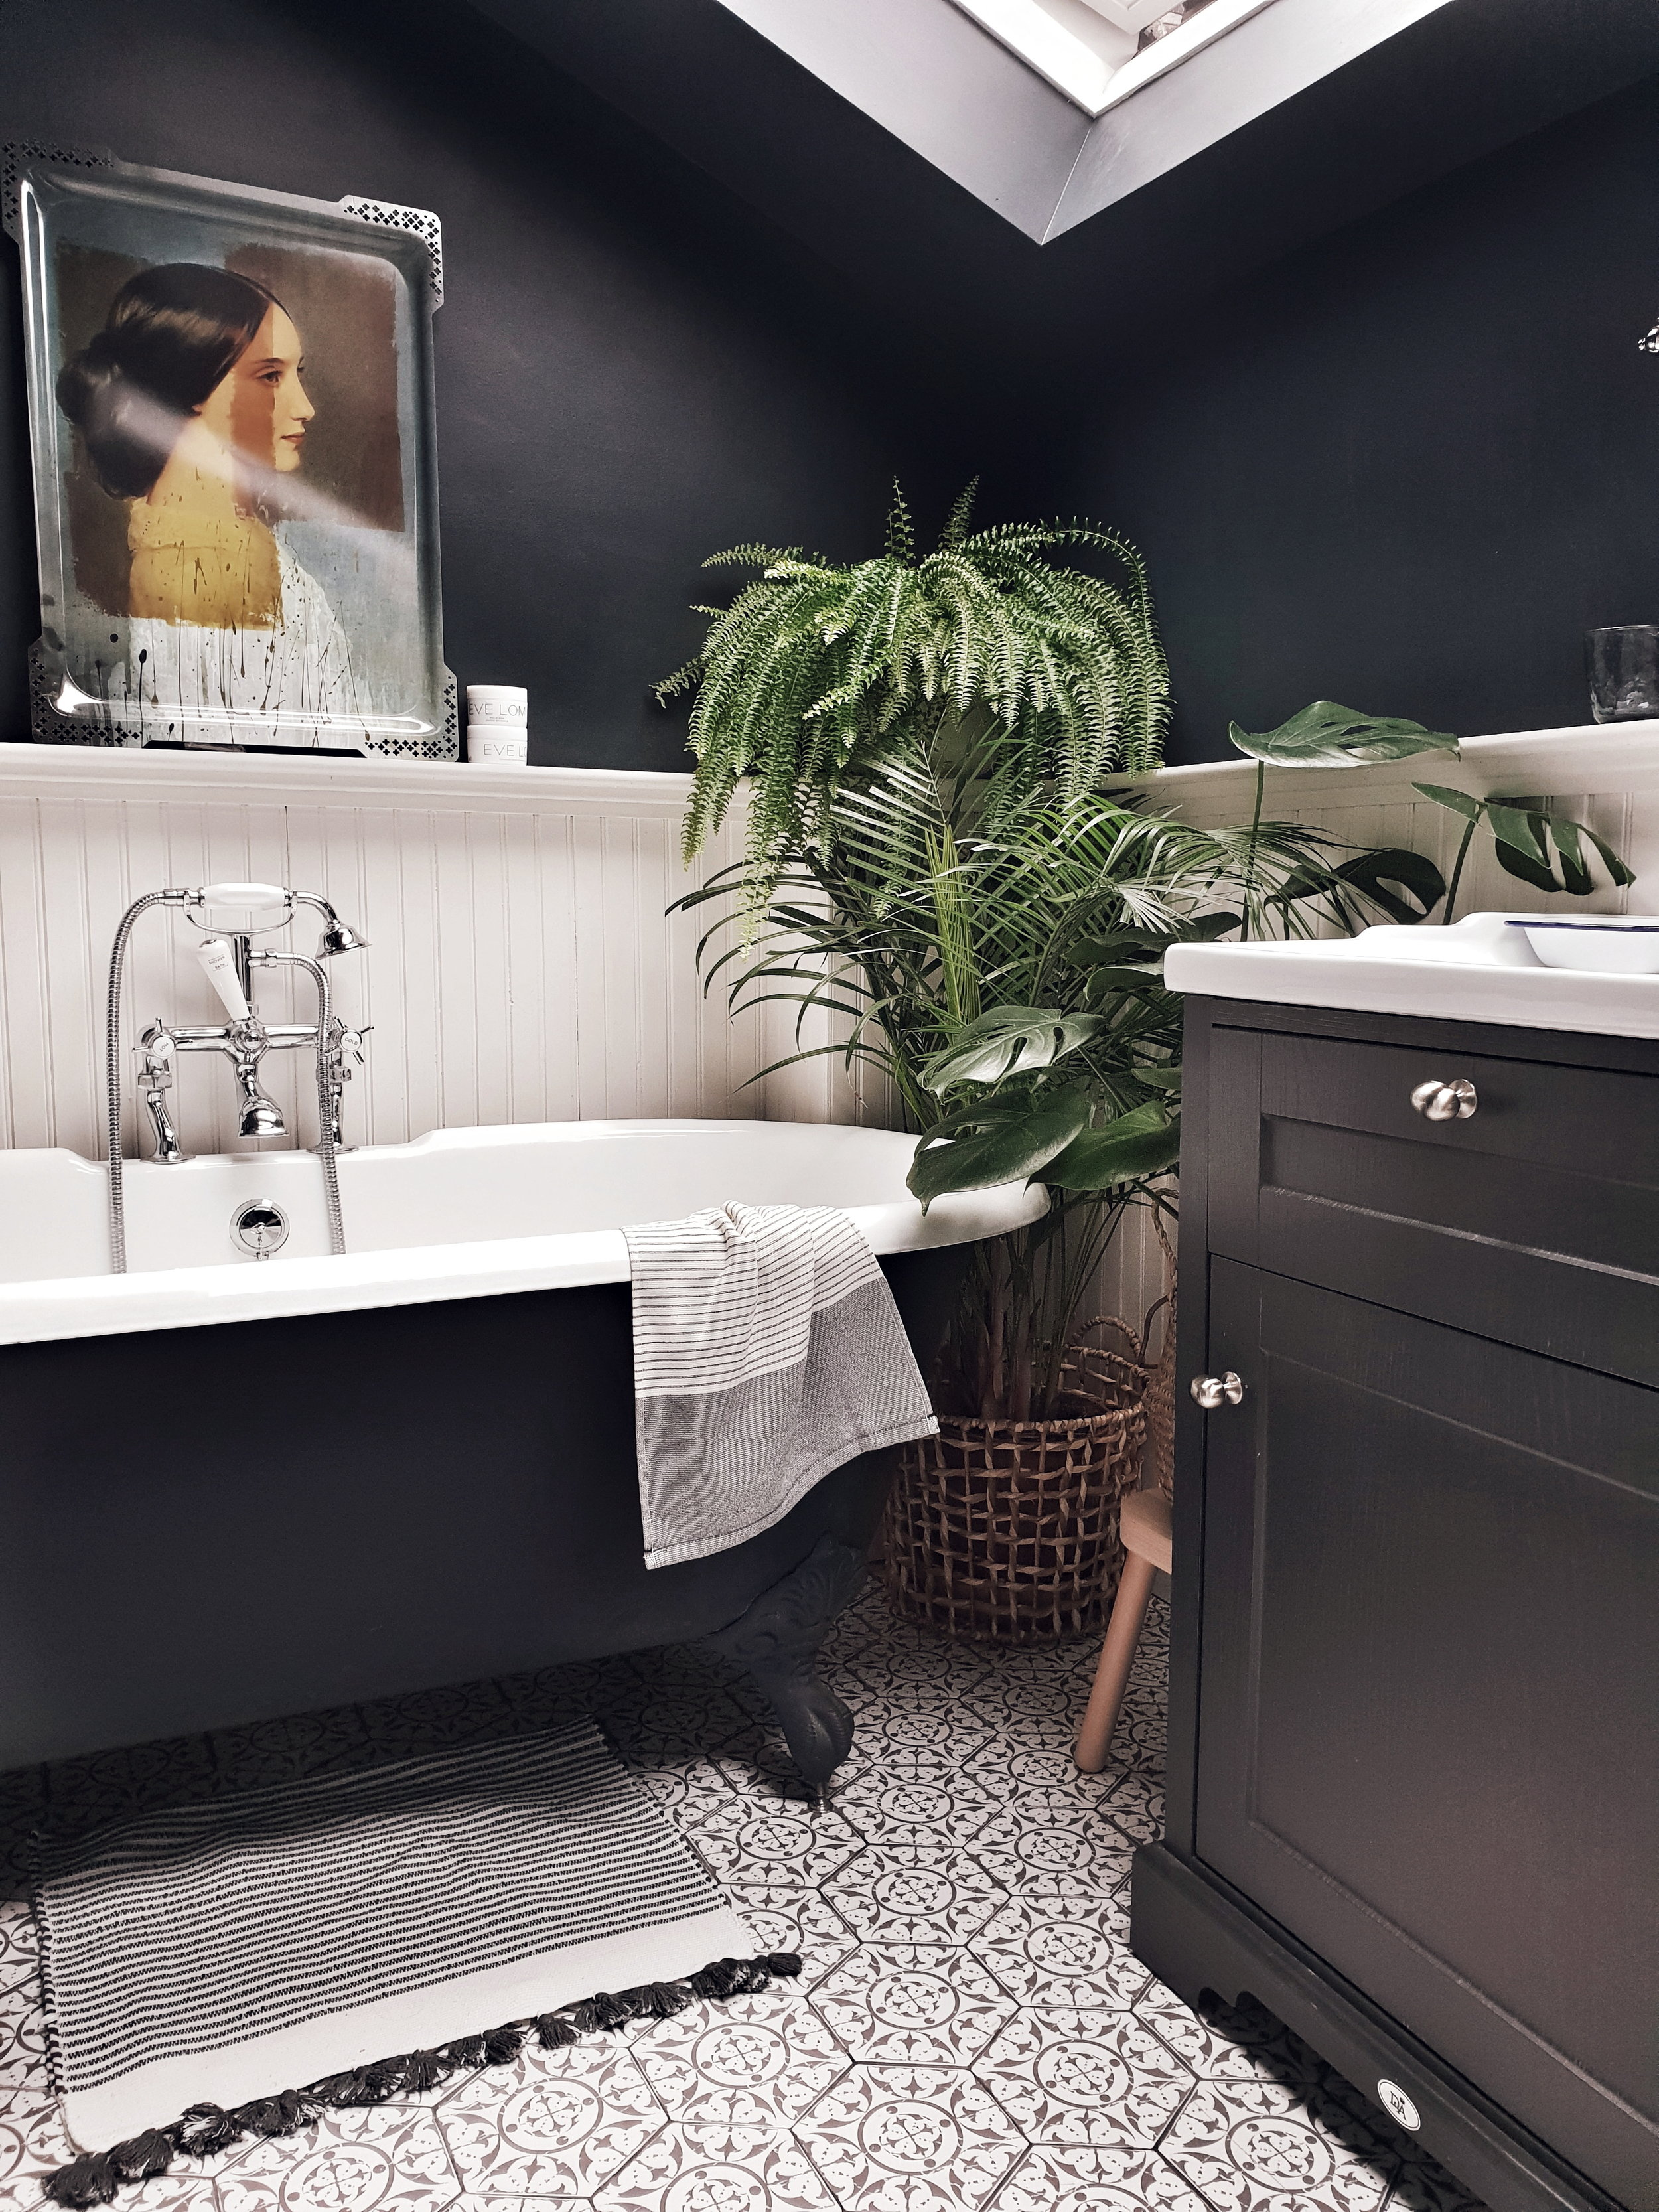 The couple sacrificed a third bedroom to move the bathroom upstairs and fit this stunning roll top bath in